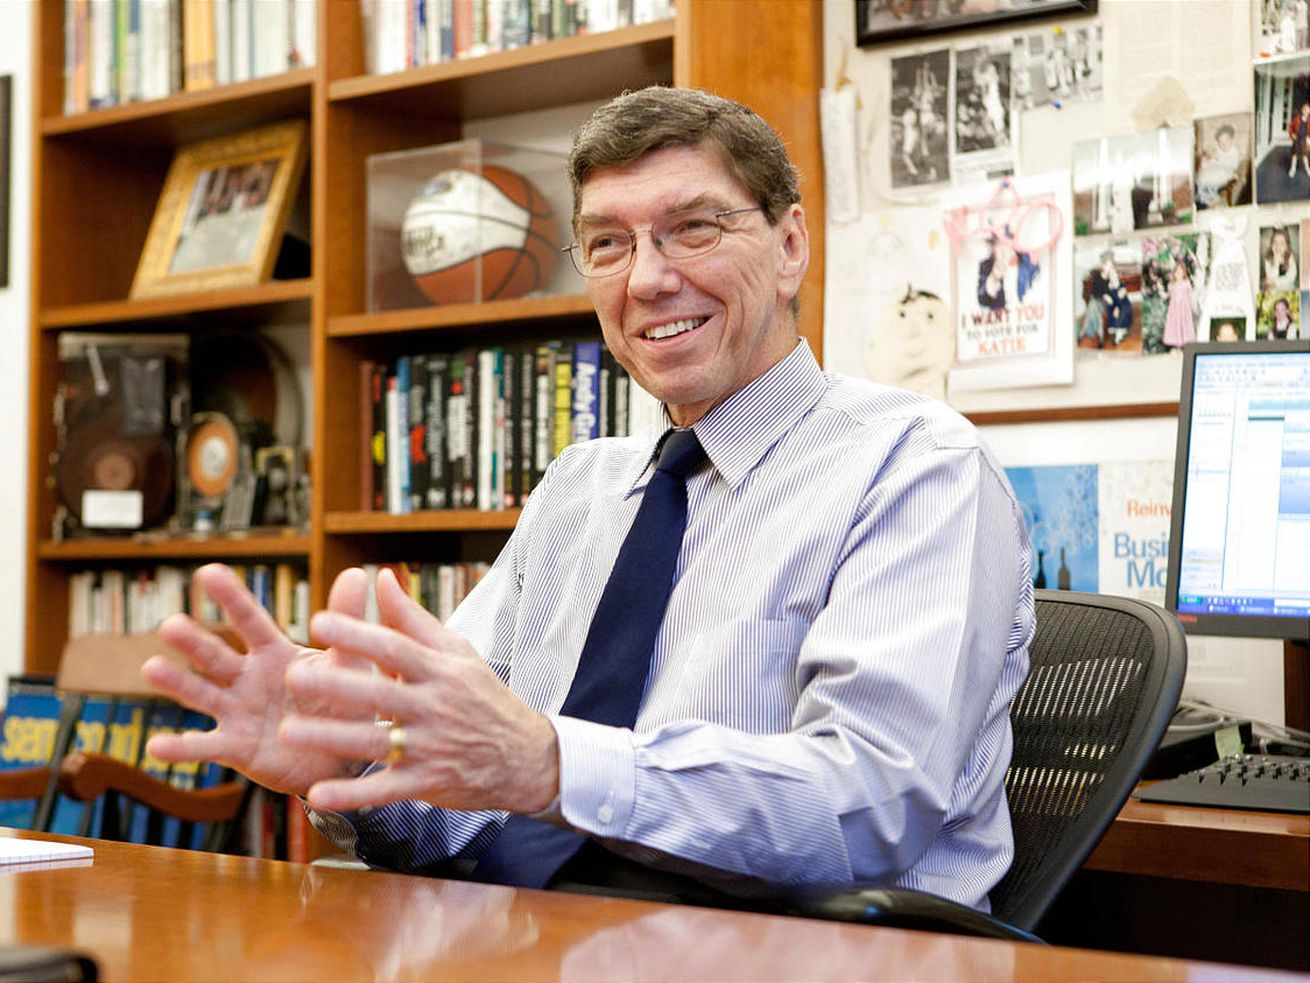 Clayton Christensen's life was worth measuring — and celebrating